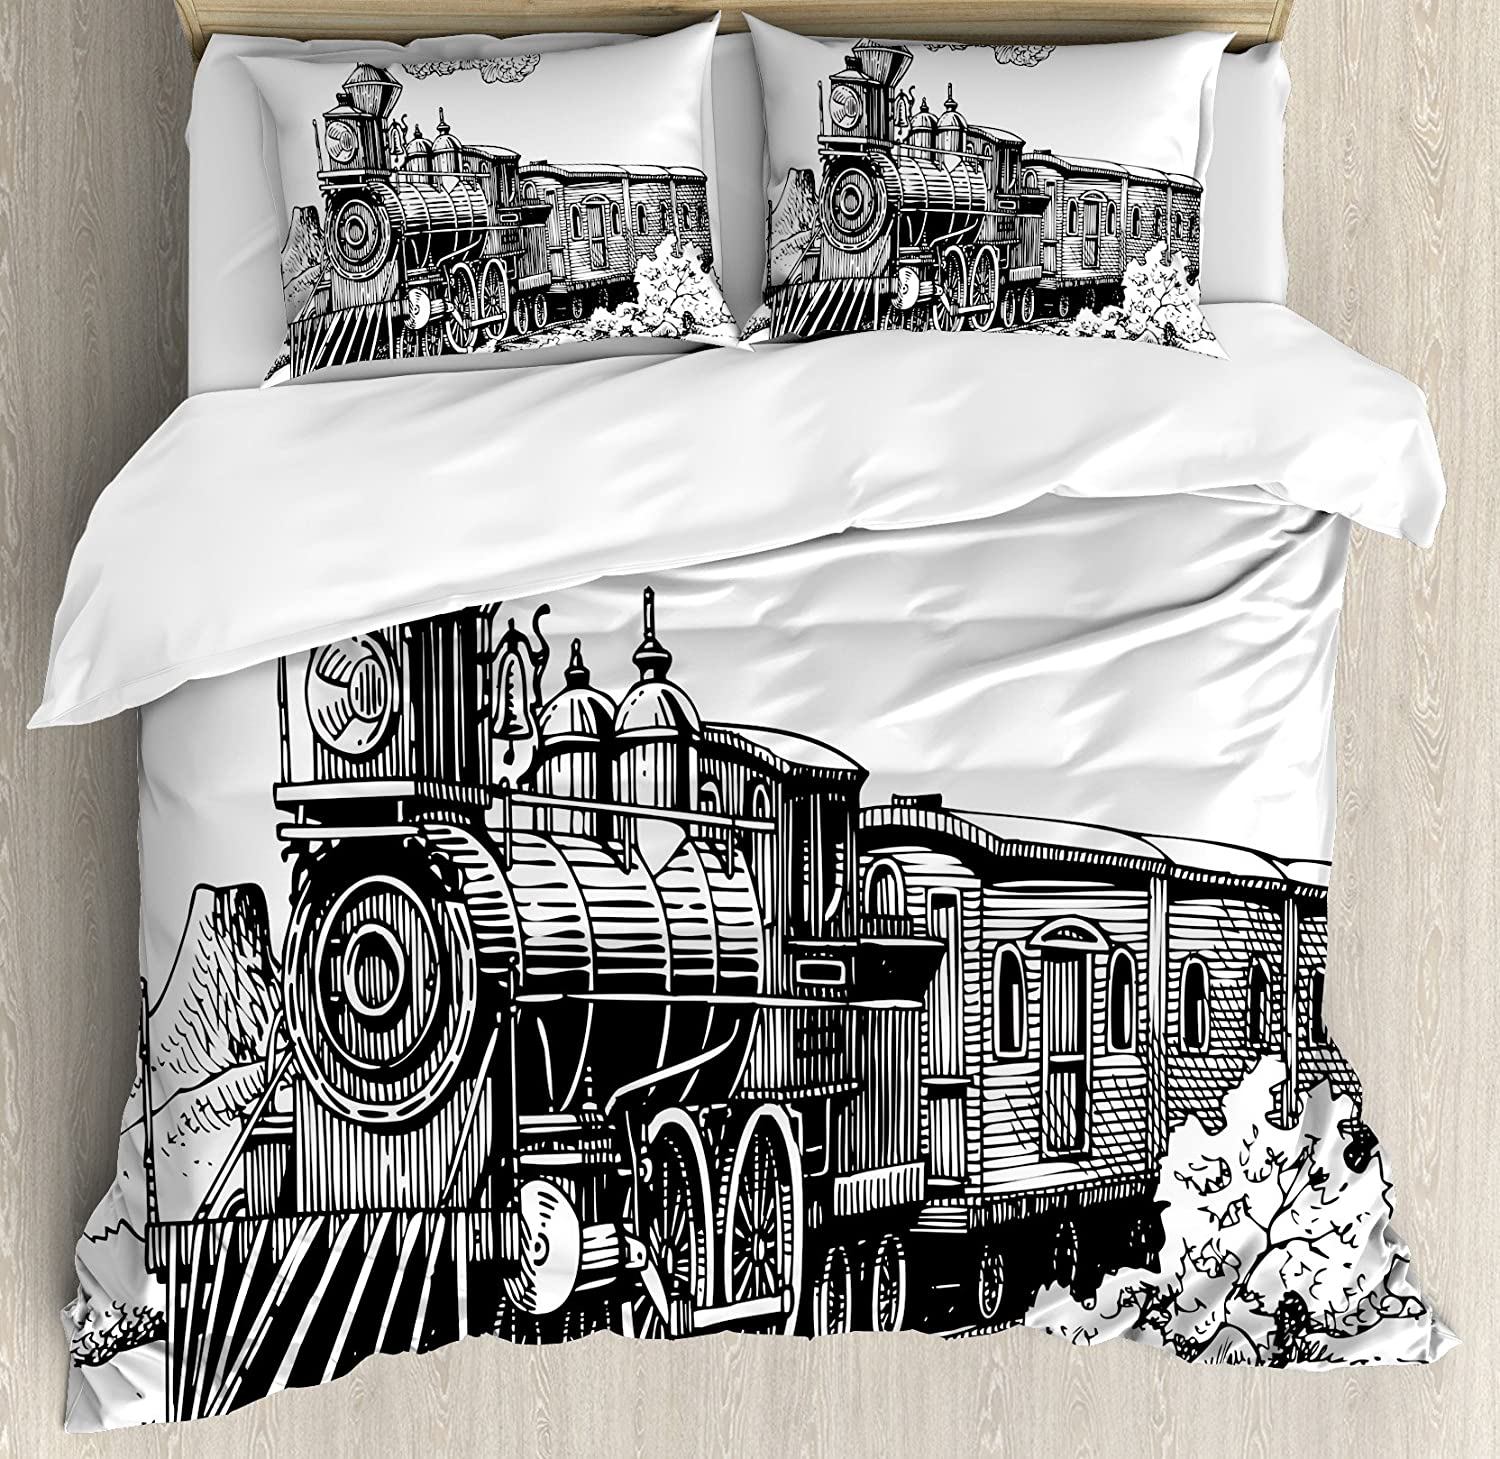 Ambesonne Steam Engine Duvet Cover Set, Rustic Old Train in Country Locomotive Wooden Wagons Rail Road with Smoke, Decorative 3 Piece Bedding Set with 2 Pillow Shams, King Size, Black and White